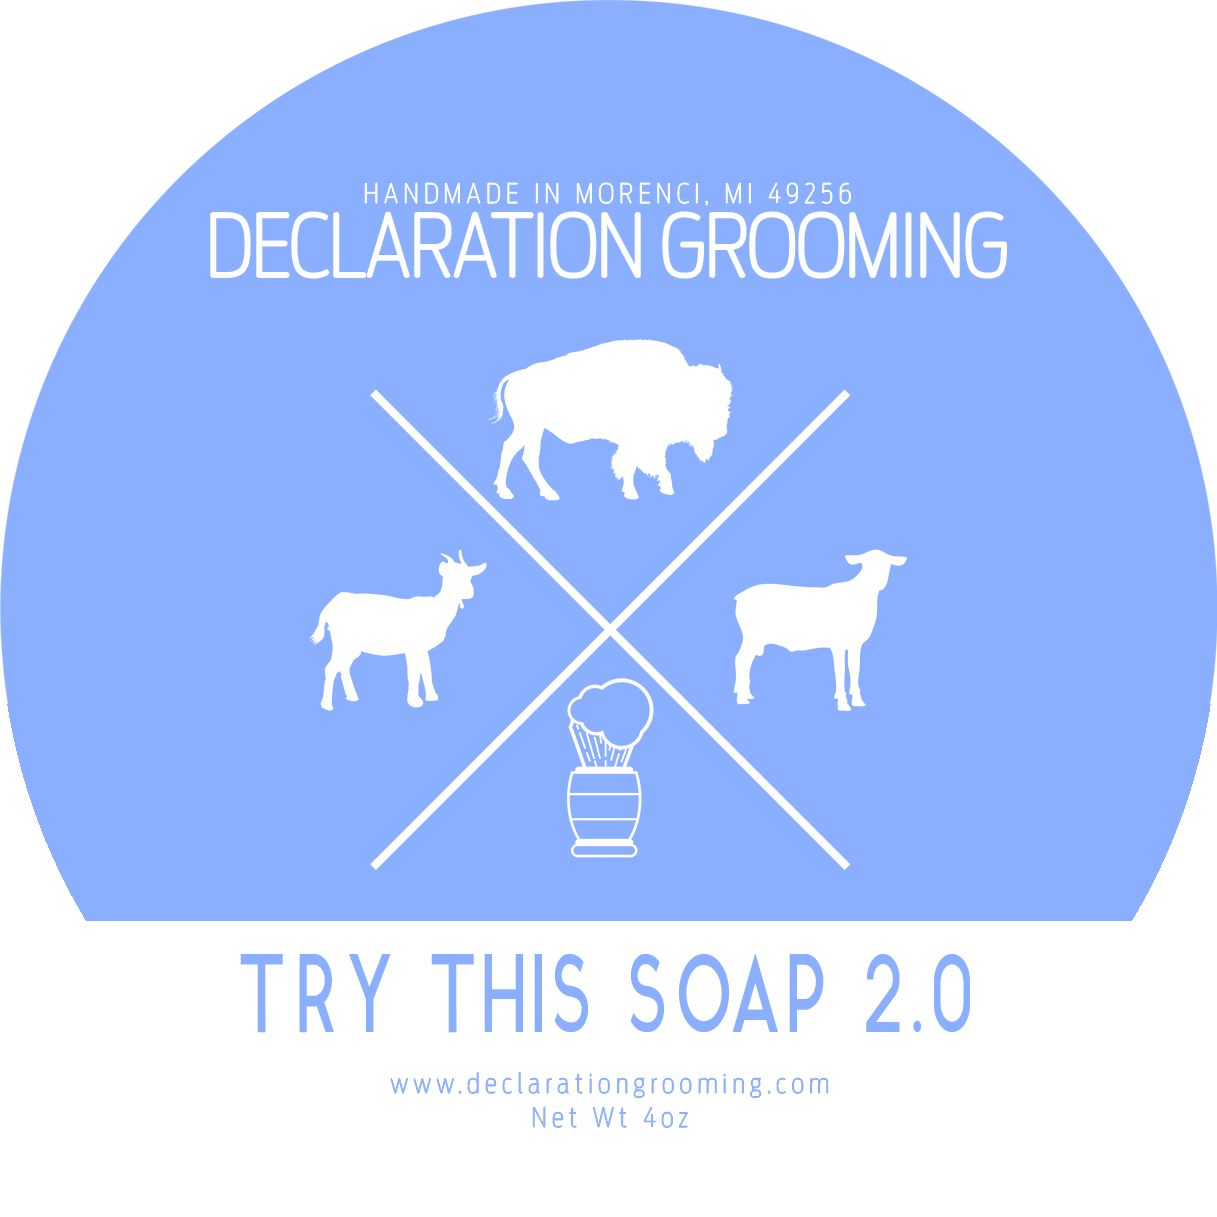 Declaration Grooming - Try This Soap 2.0 - Soap image